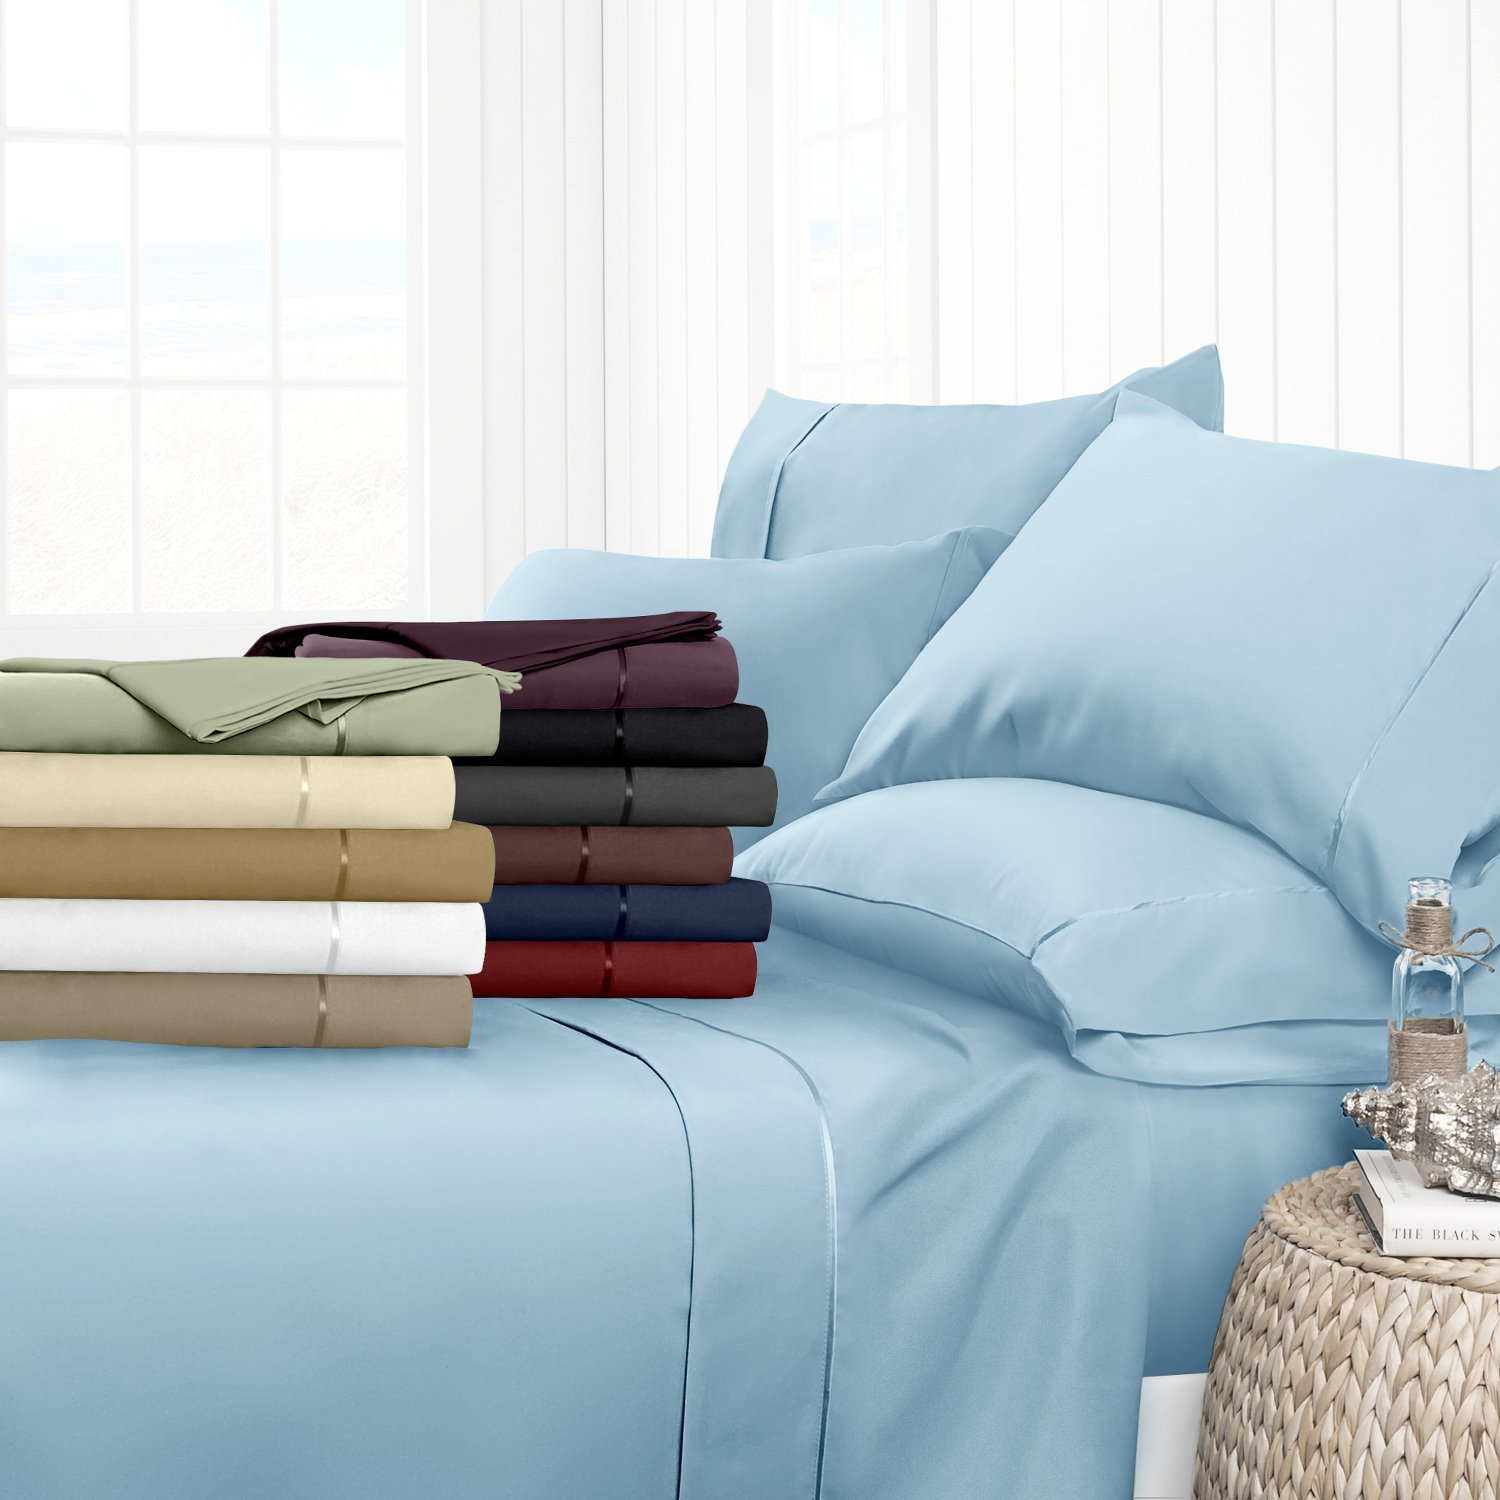 Egyptian Luxury Hotel Collection 4-Piece Bed Sheet Set - Deep Pockets, Wrinkle and Fade Resistant, Hypoallergenic Sheet and Pillow Case Set - Twin, Sky Blue